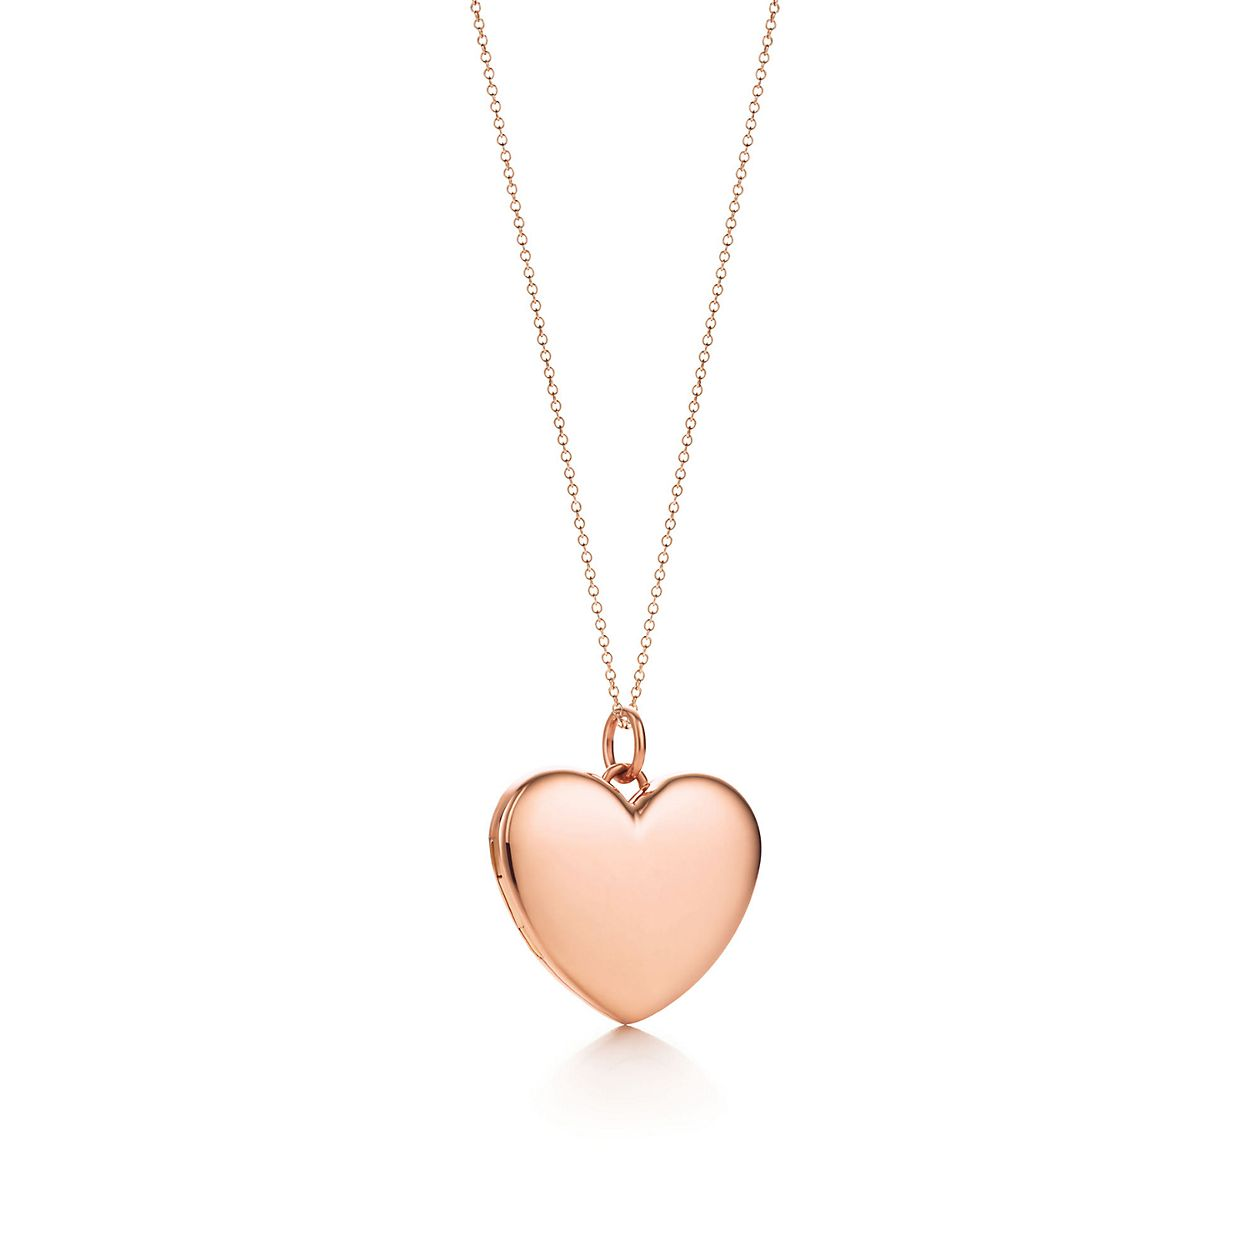 london necklace silver products rose vintage gold lockets with and locket heart mint pink jamie pendant rosey